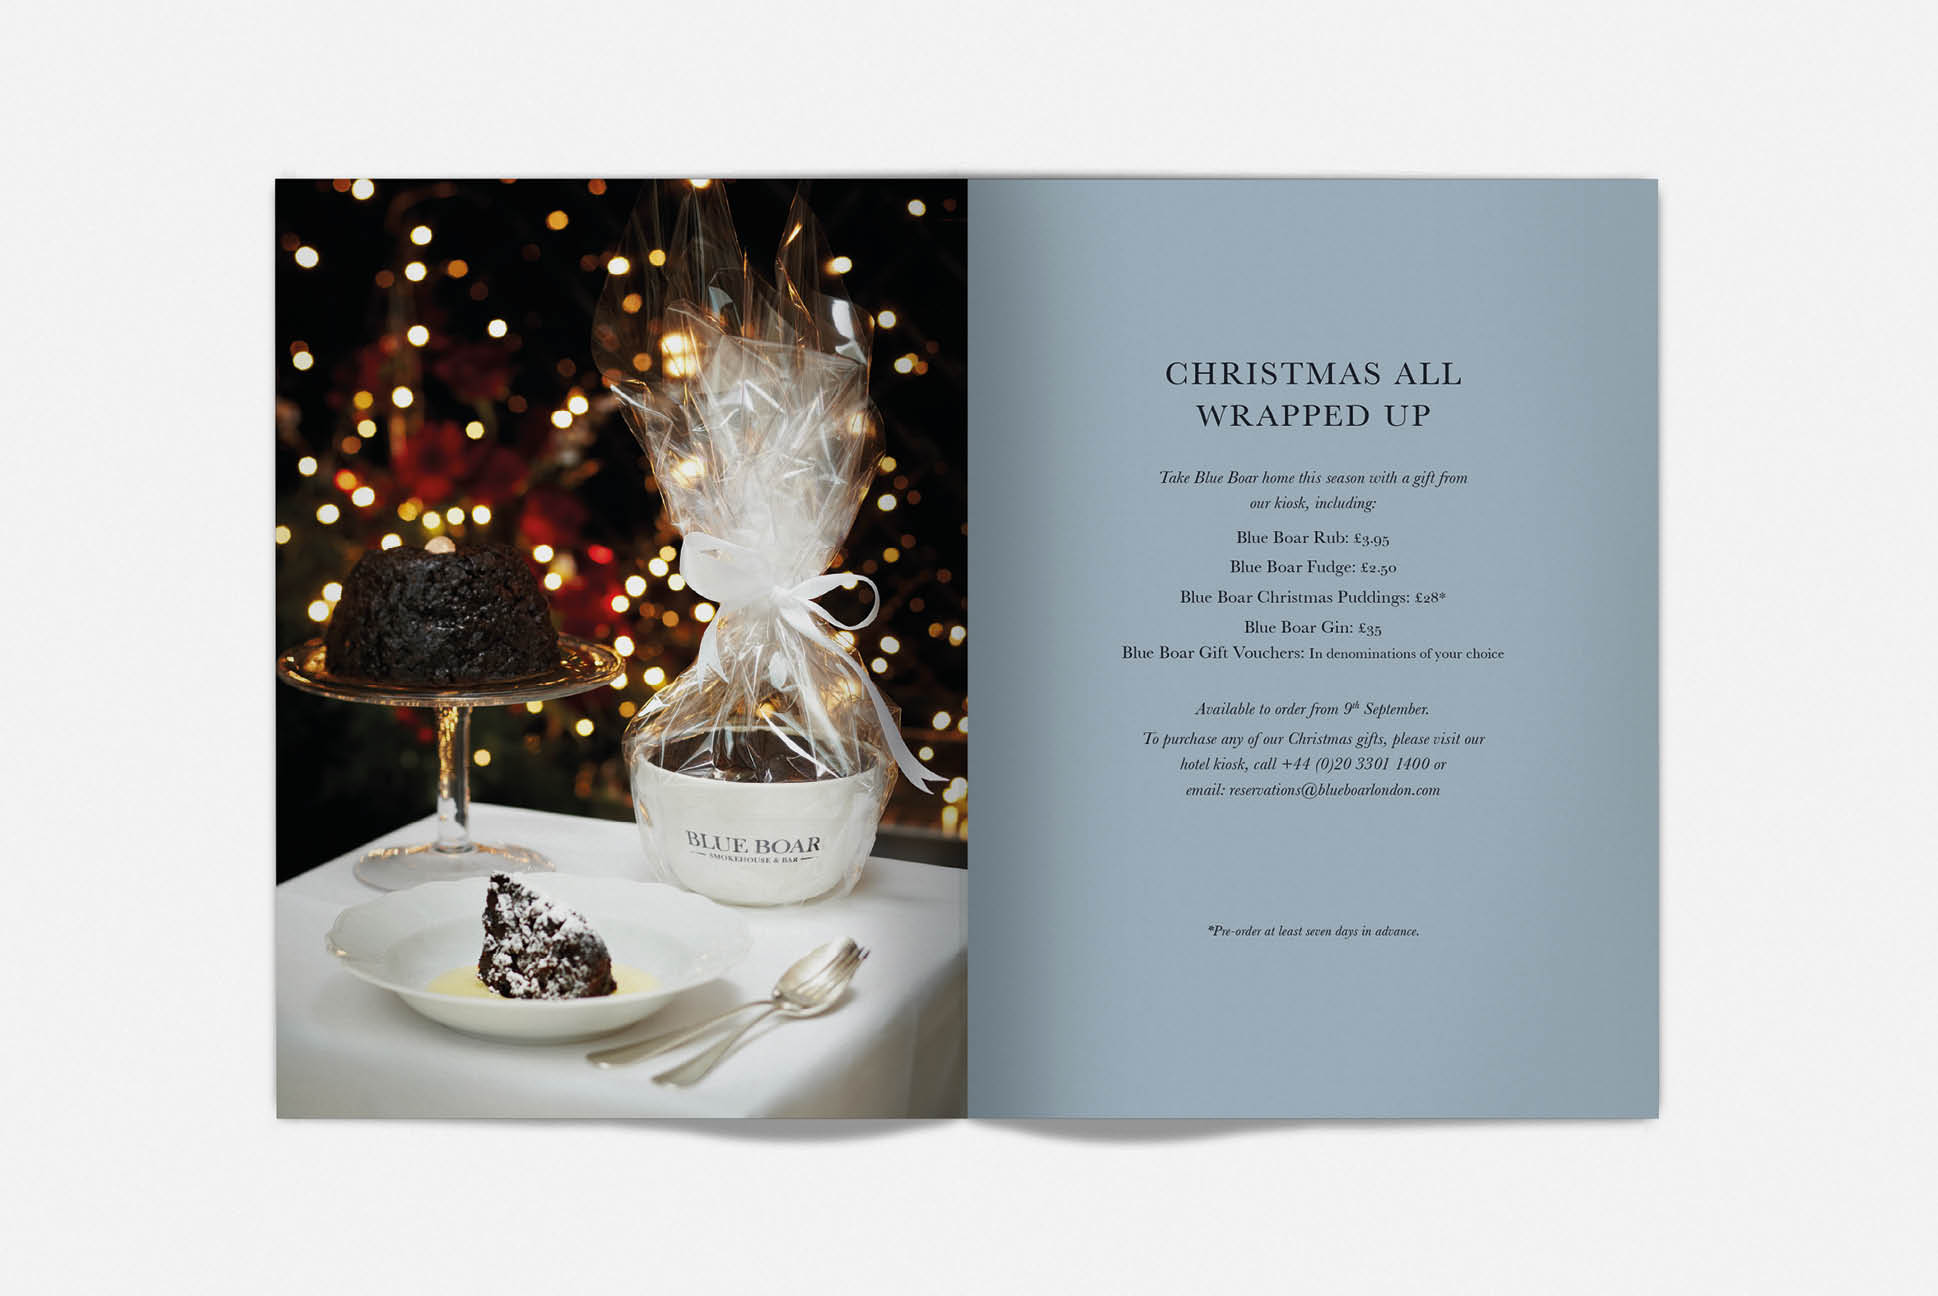 Blue Boar Christmas brochure   Branding and Promotional Collateral - Independent Marketing   IM London   Restaurant Marketing in London